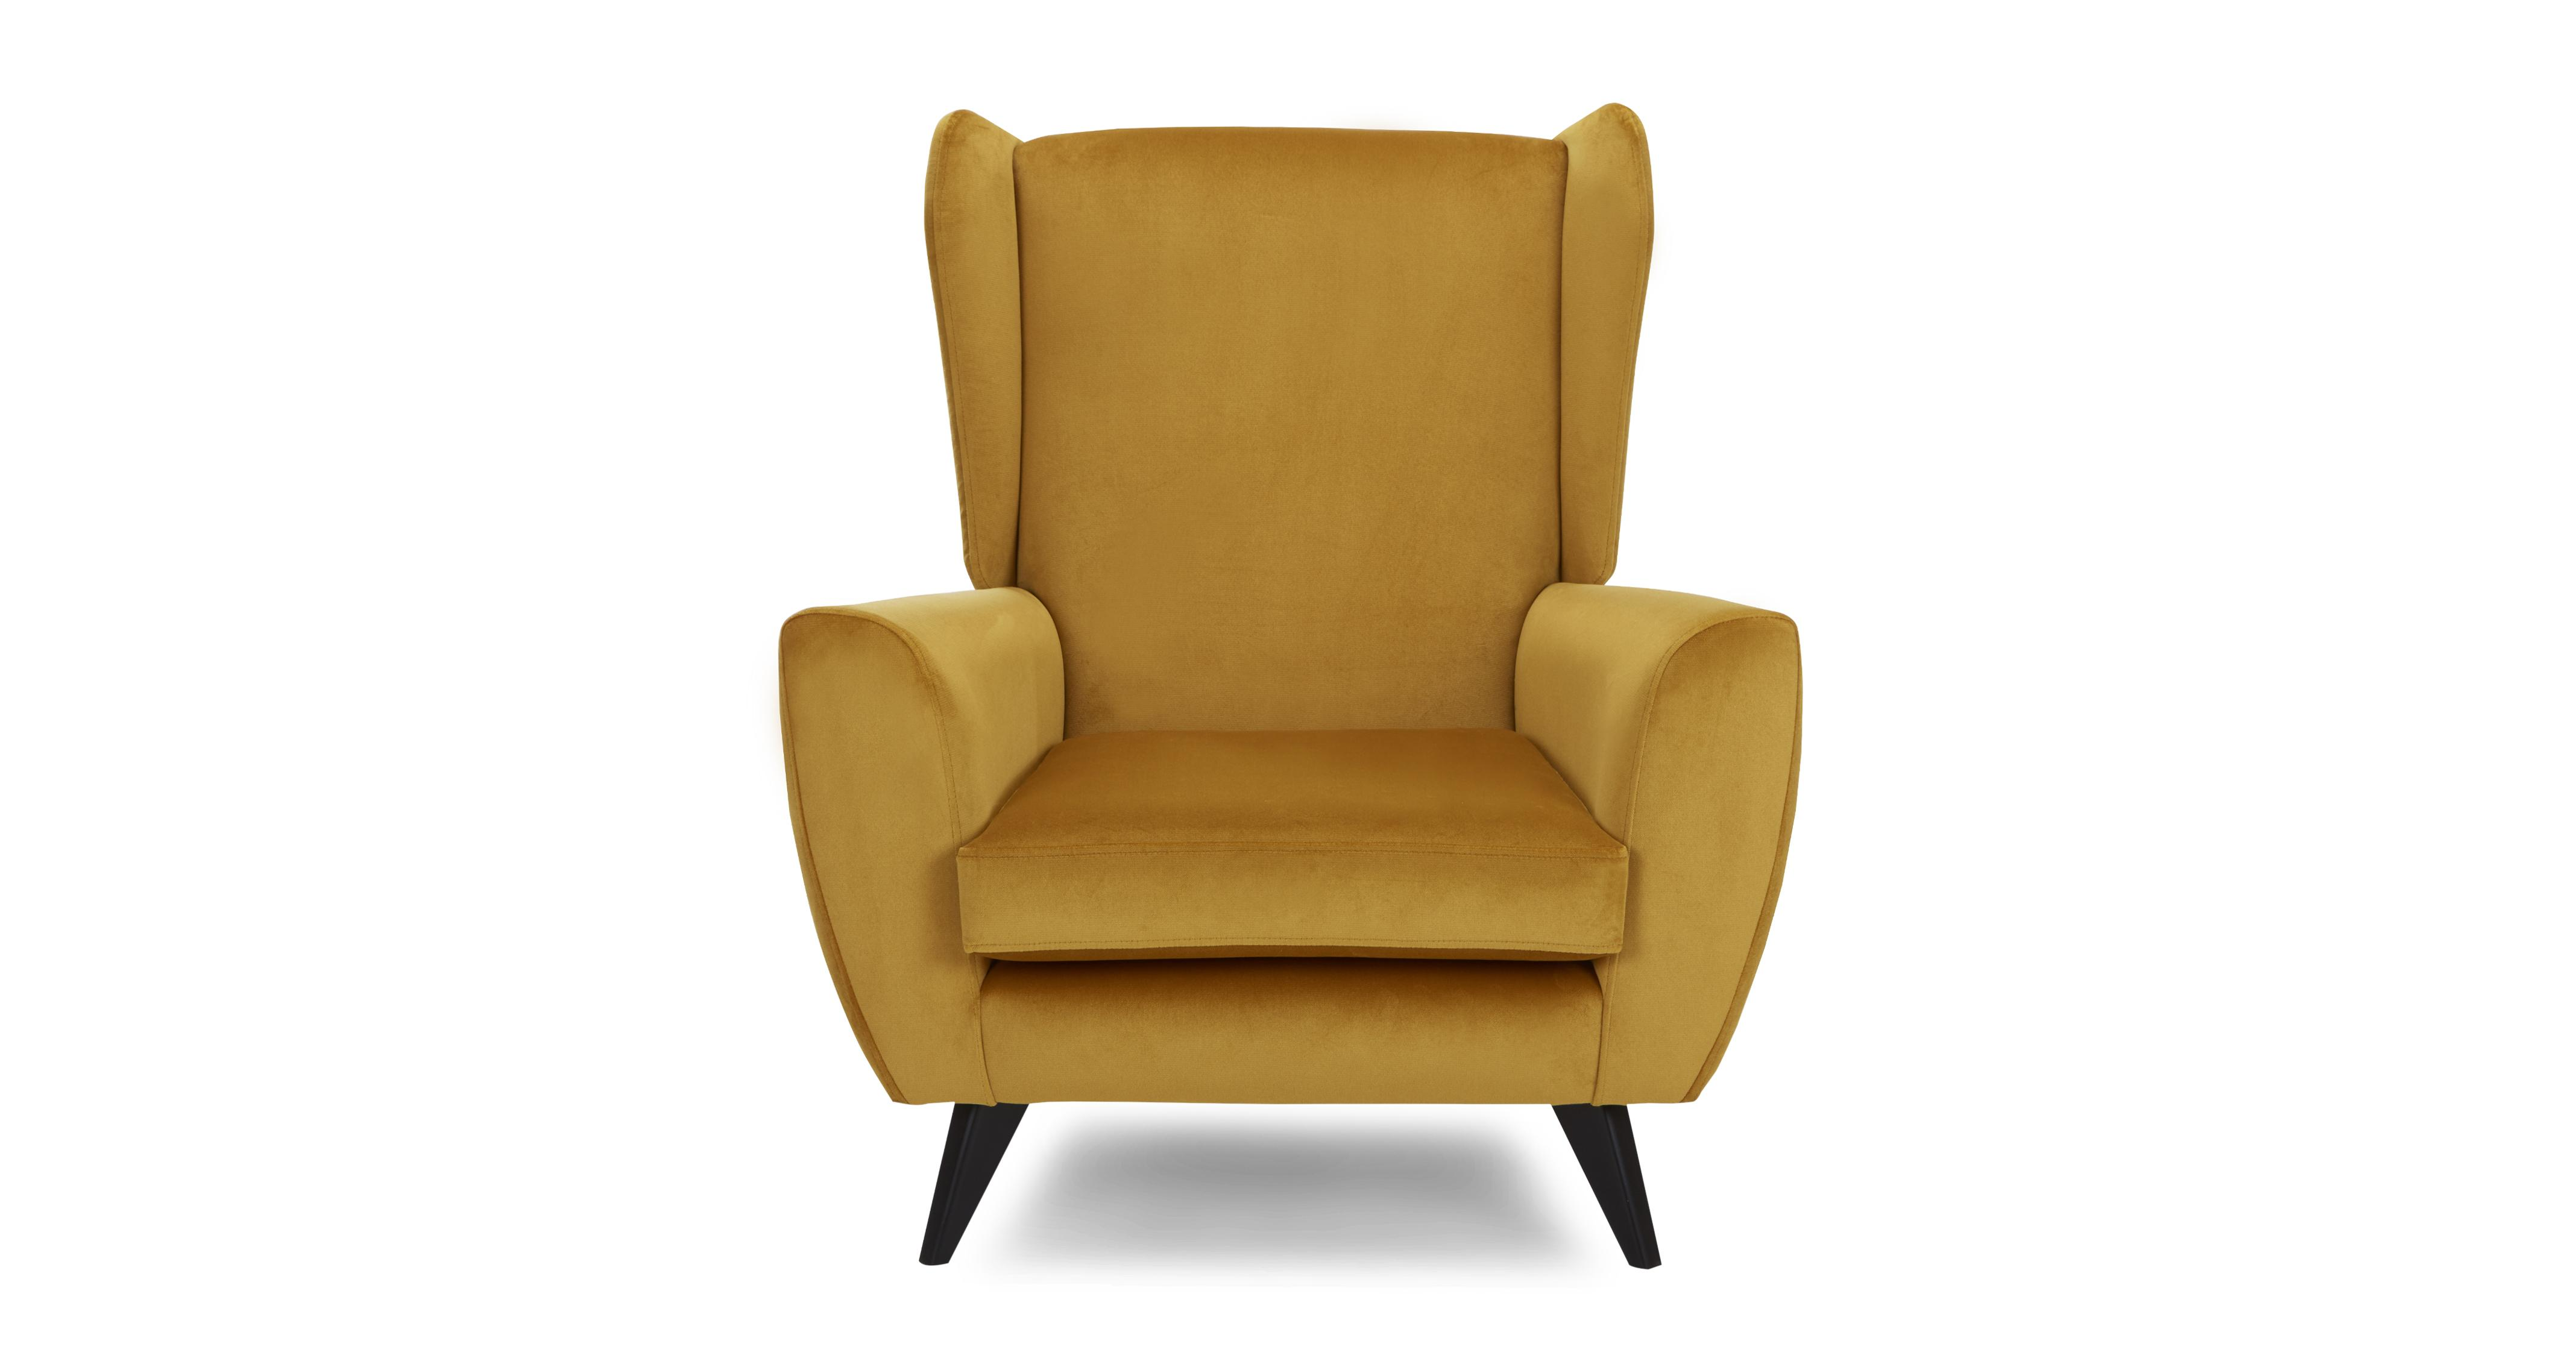 task yellow type com quality chairs chair collections with base ahrend products black